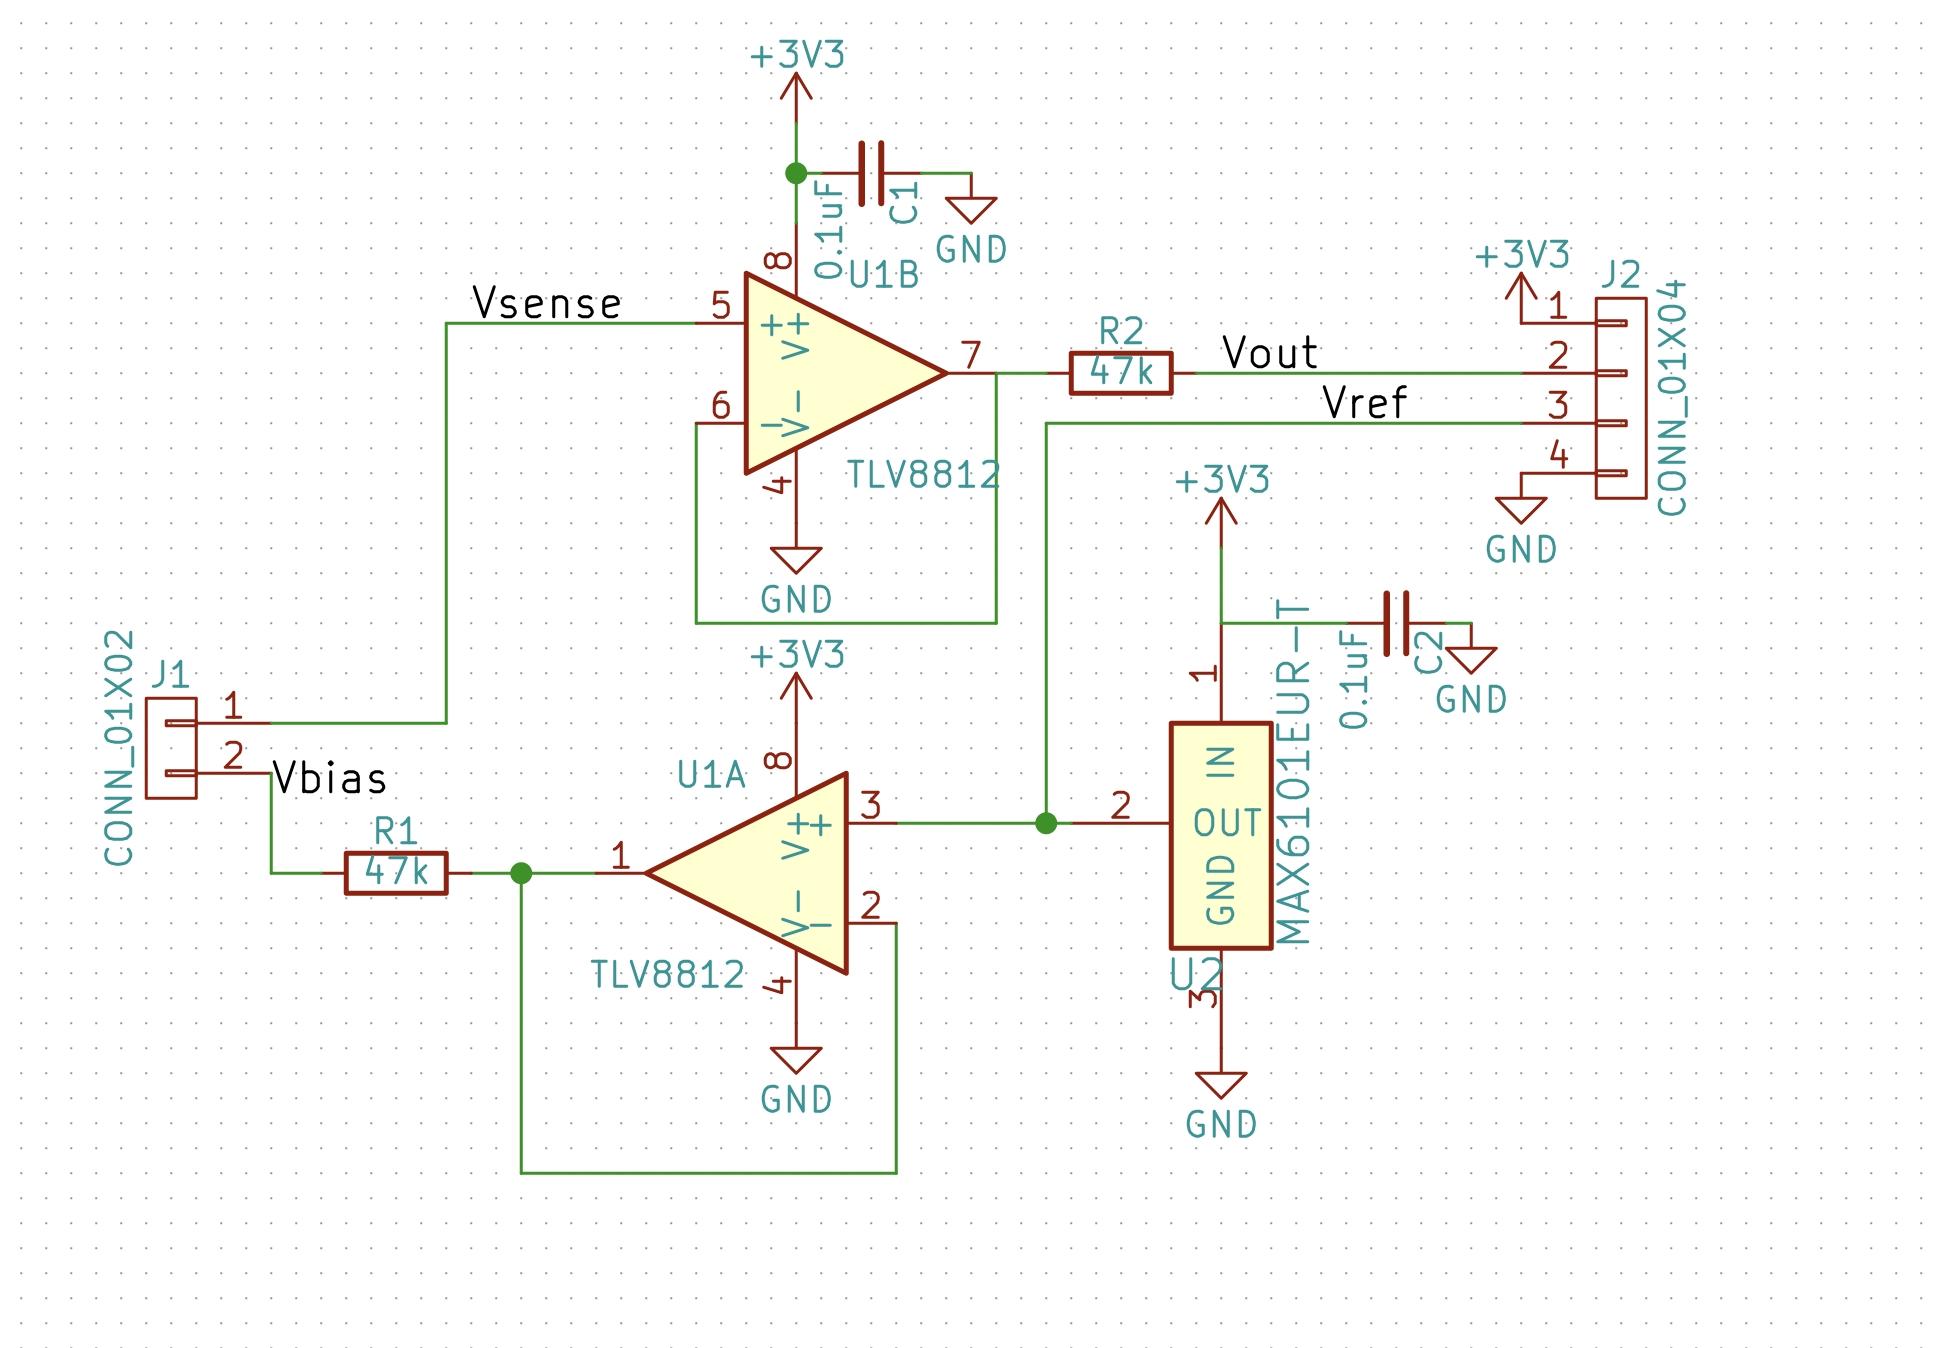 Kidde Sm120x Relay Wiring Diagram - Kidde Sm120x Relay Wiring Diagram Elegant Electronics Irc Archive for 2017 08 27 5j